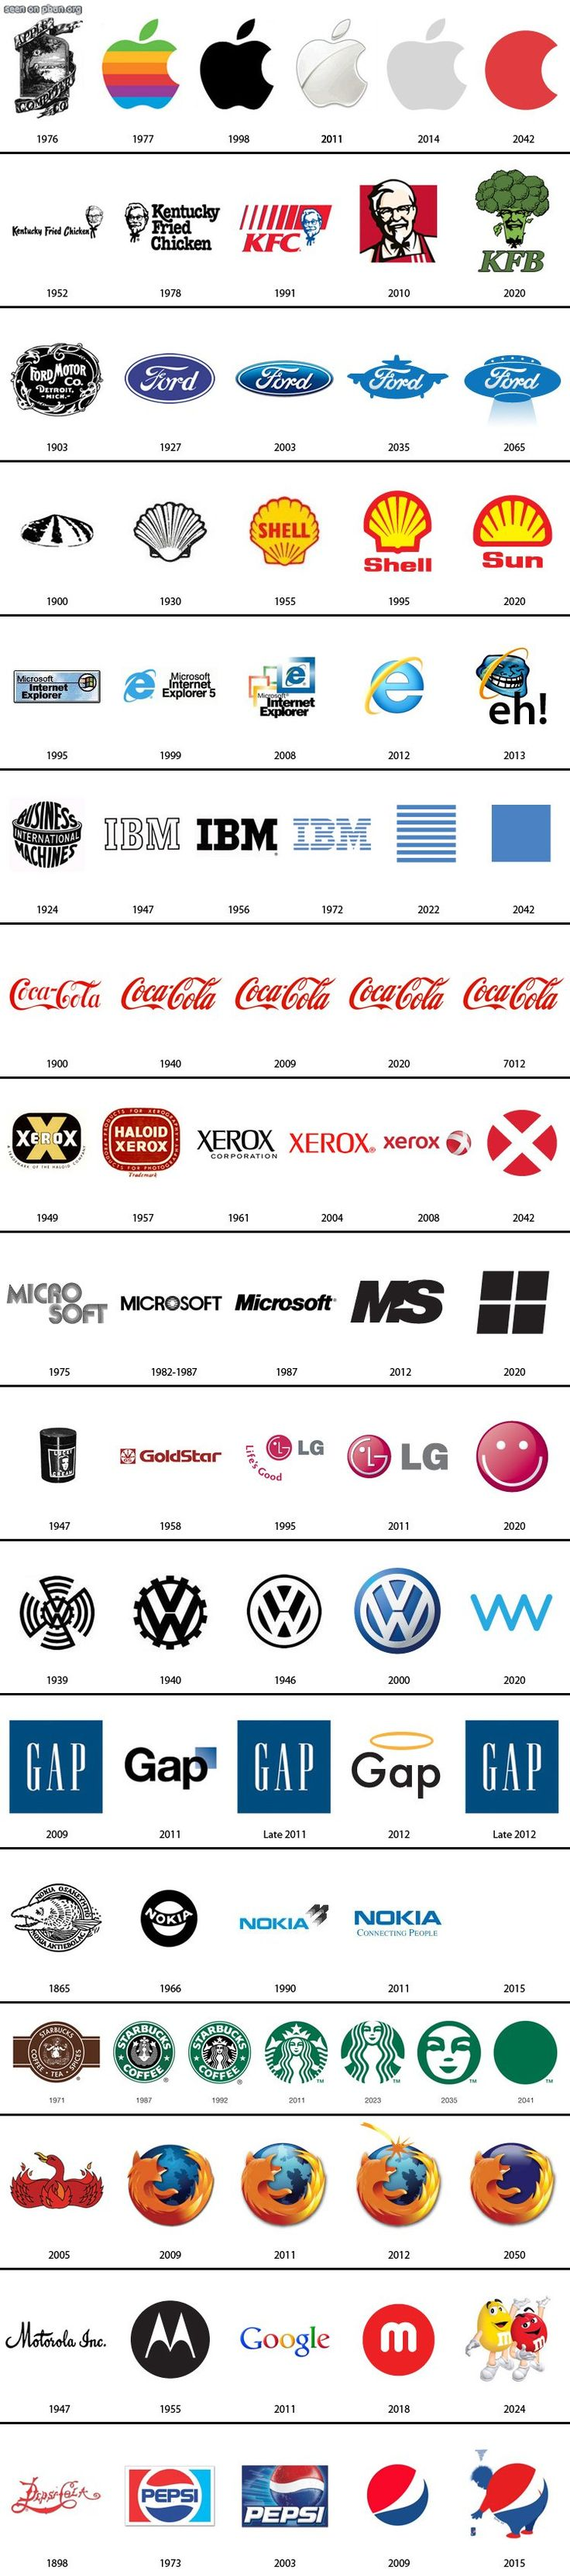 shows how logos were innovated over time, shoes how simple they were and how complex with colors they later became.